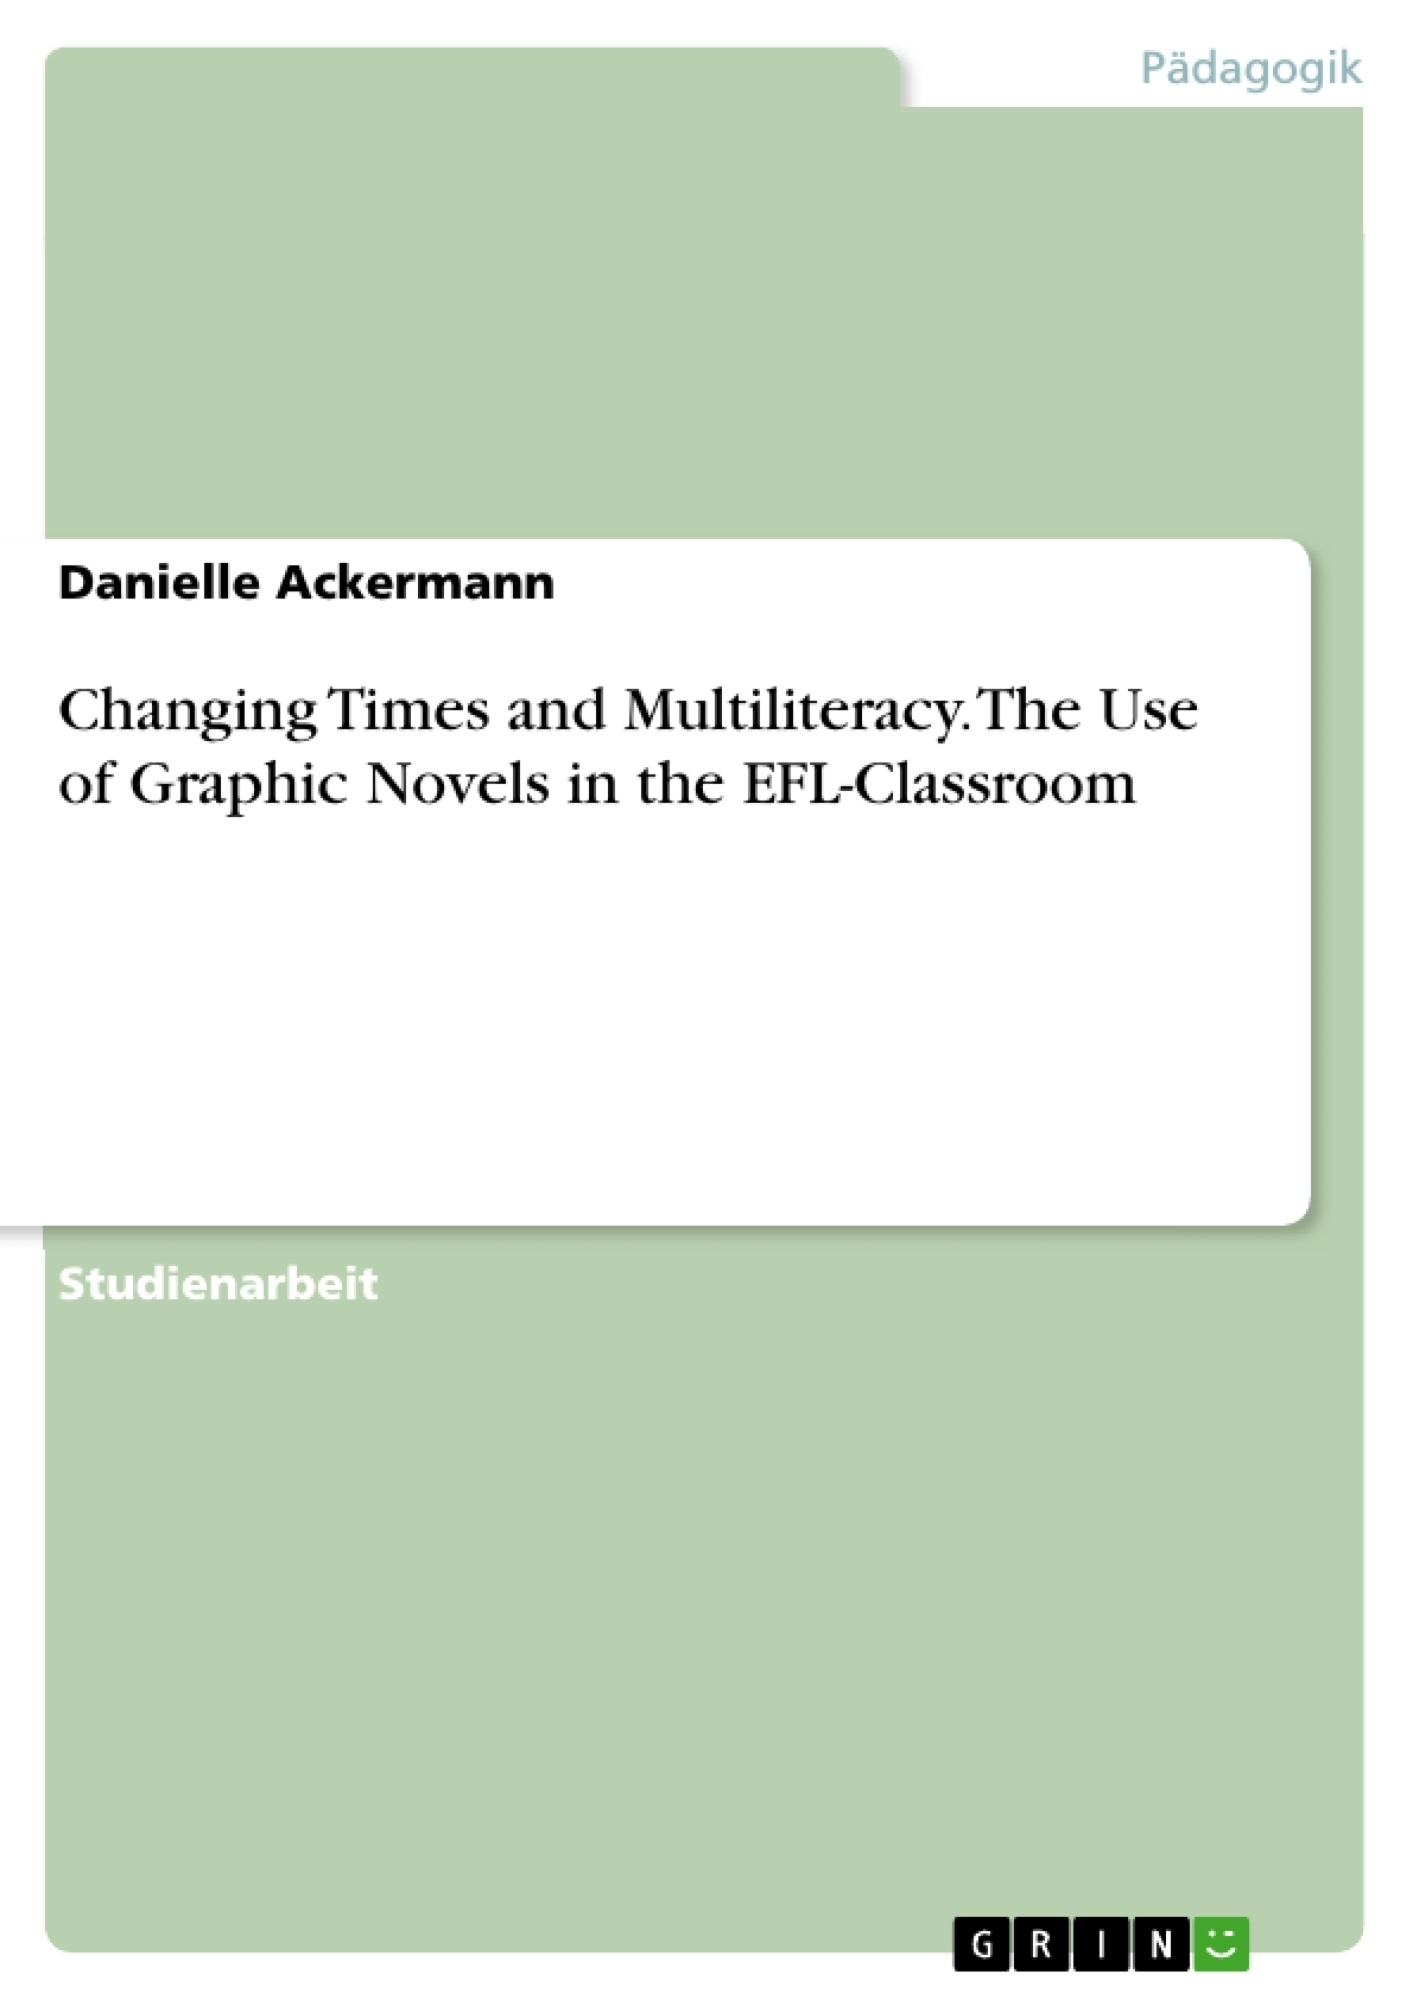 Titel: Changing Times and Multiliteracy. The Use of Graphic Novels in the EFL-Classroom